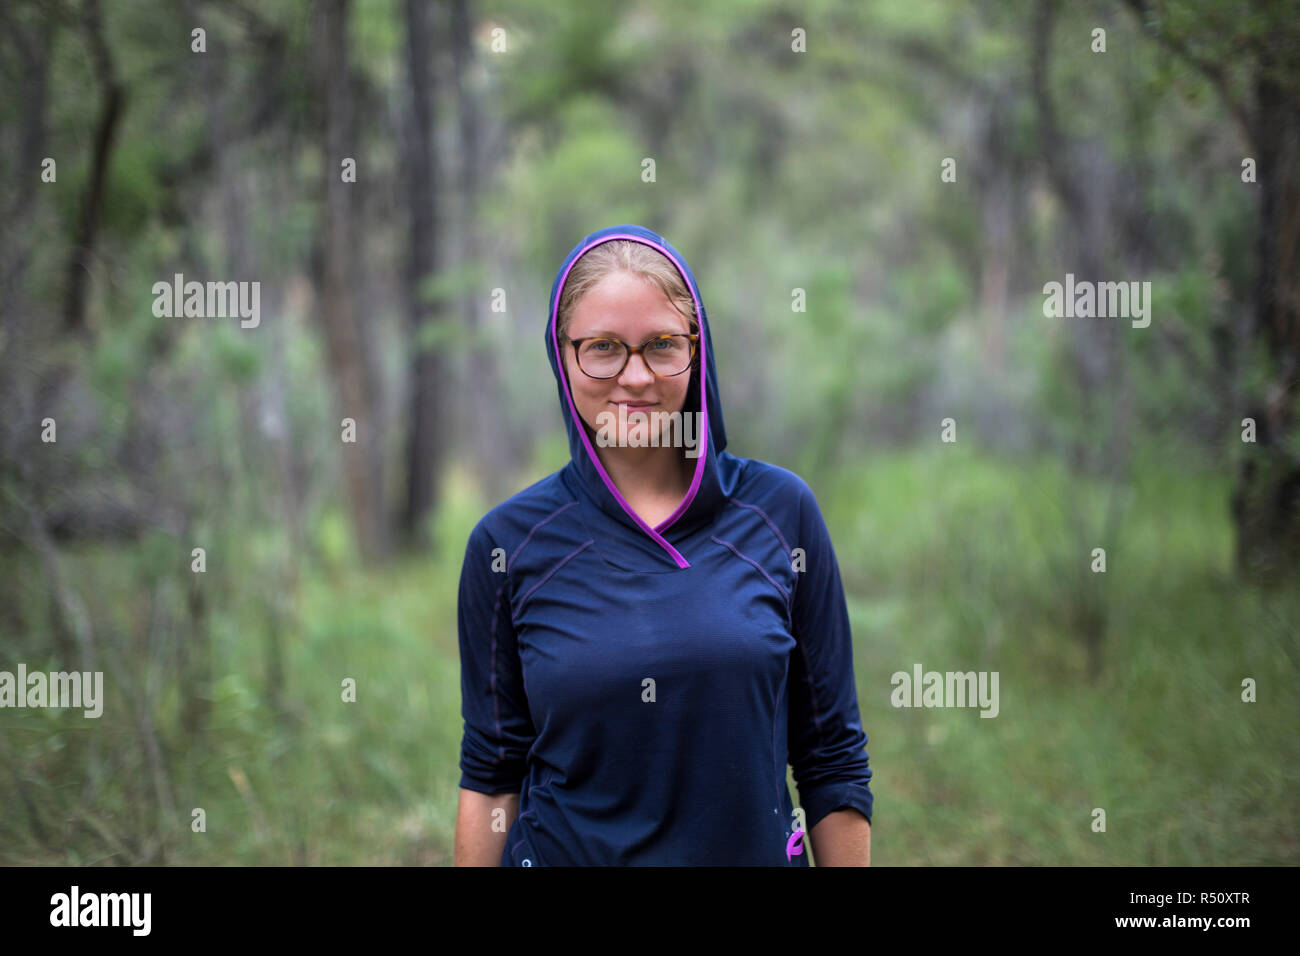 Front view waist up portrait of female raft guide in blue hooded sweatshirt and eyeglasses in forest - Stock Image